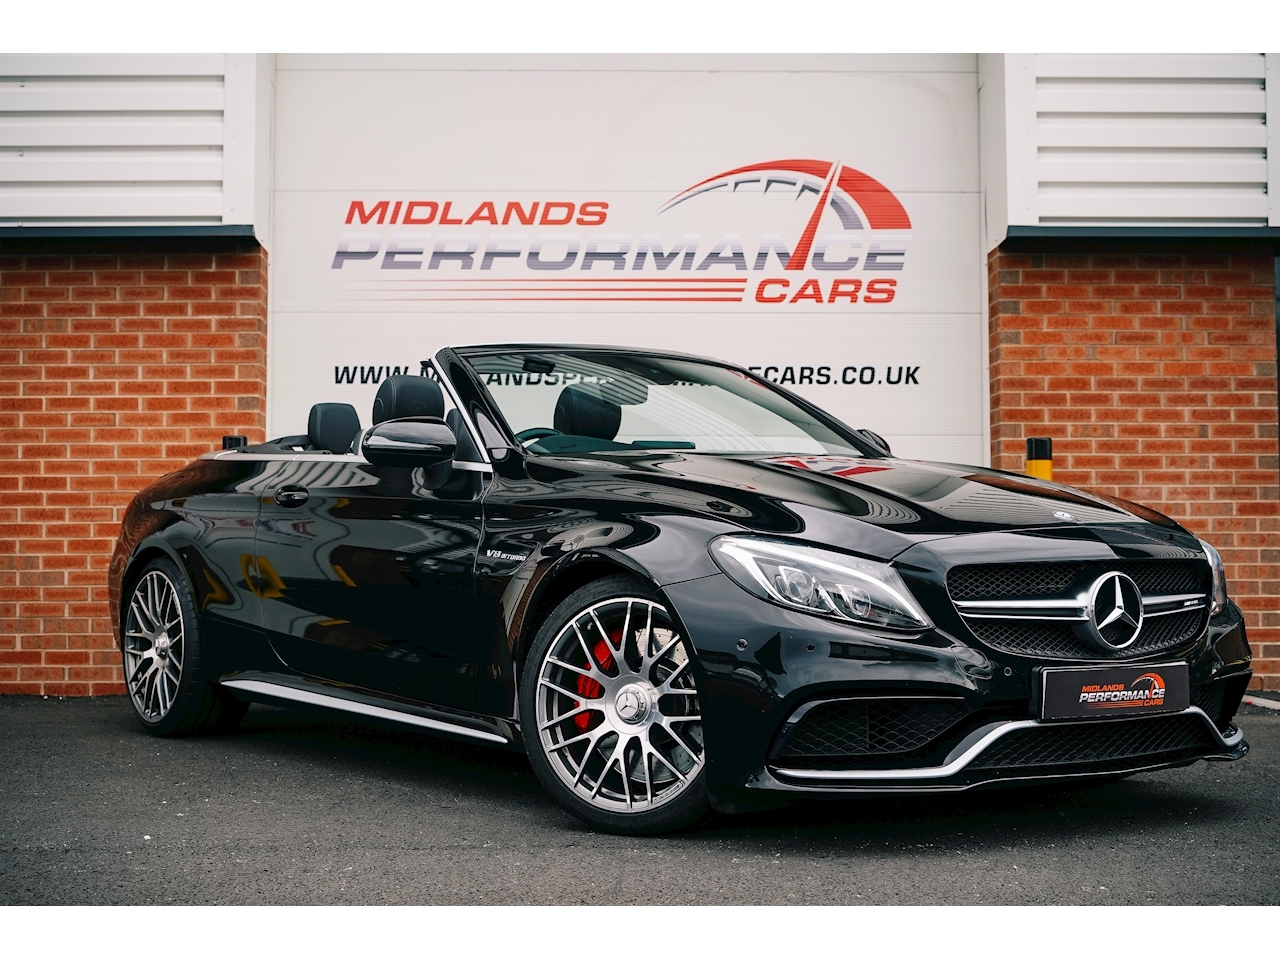 Mercedes-Benz C Class C63 S AMG Cabriolet Cabriolet 4.0 SpdS MCT Petrol